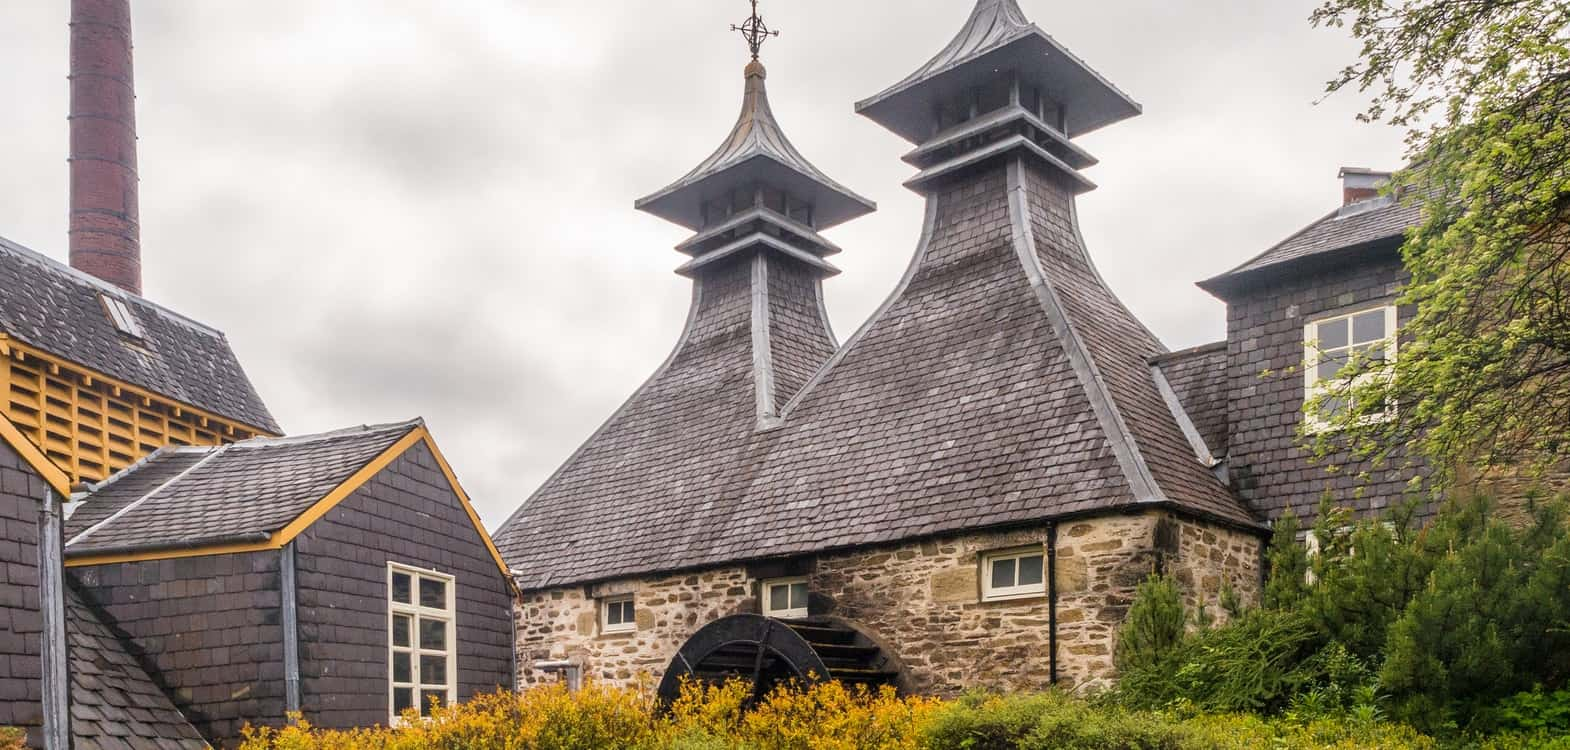 Distillery towers and roofs of buildings in the Highlands of Scotland